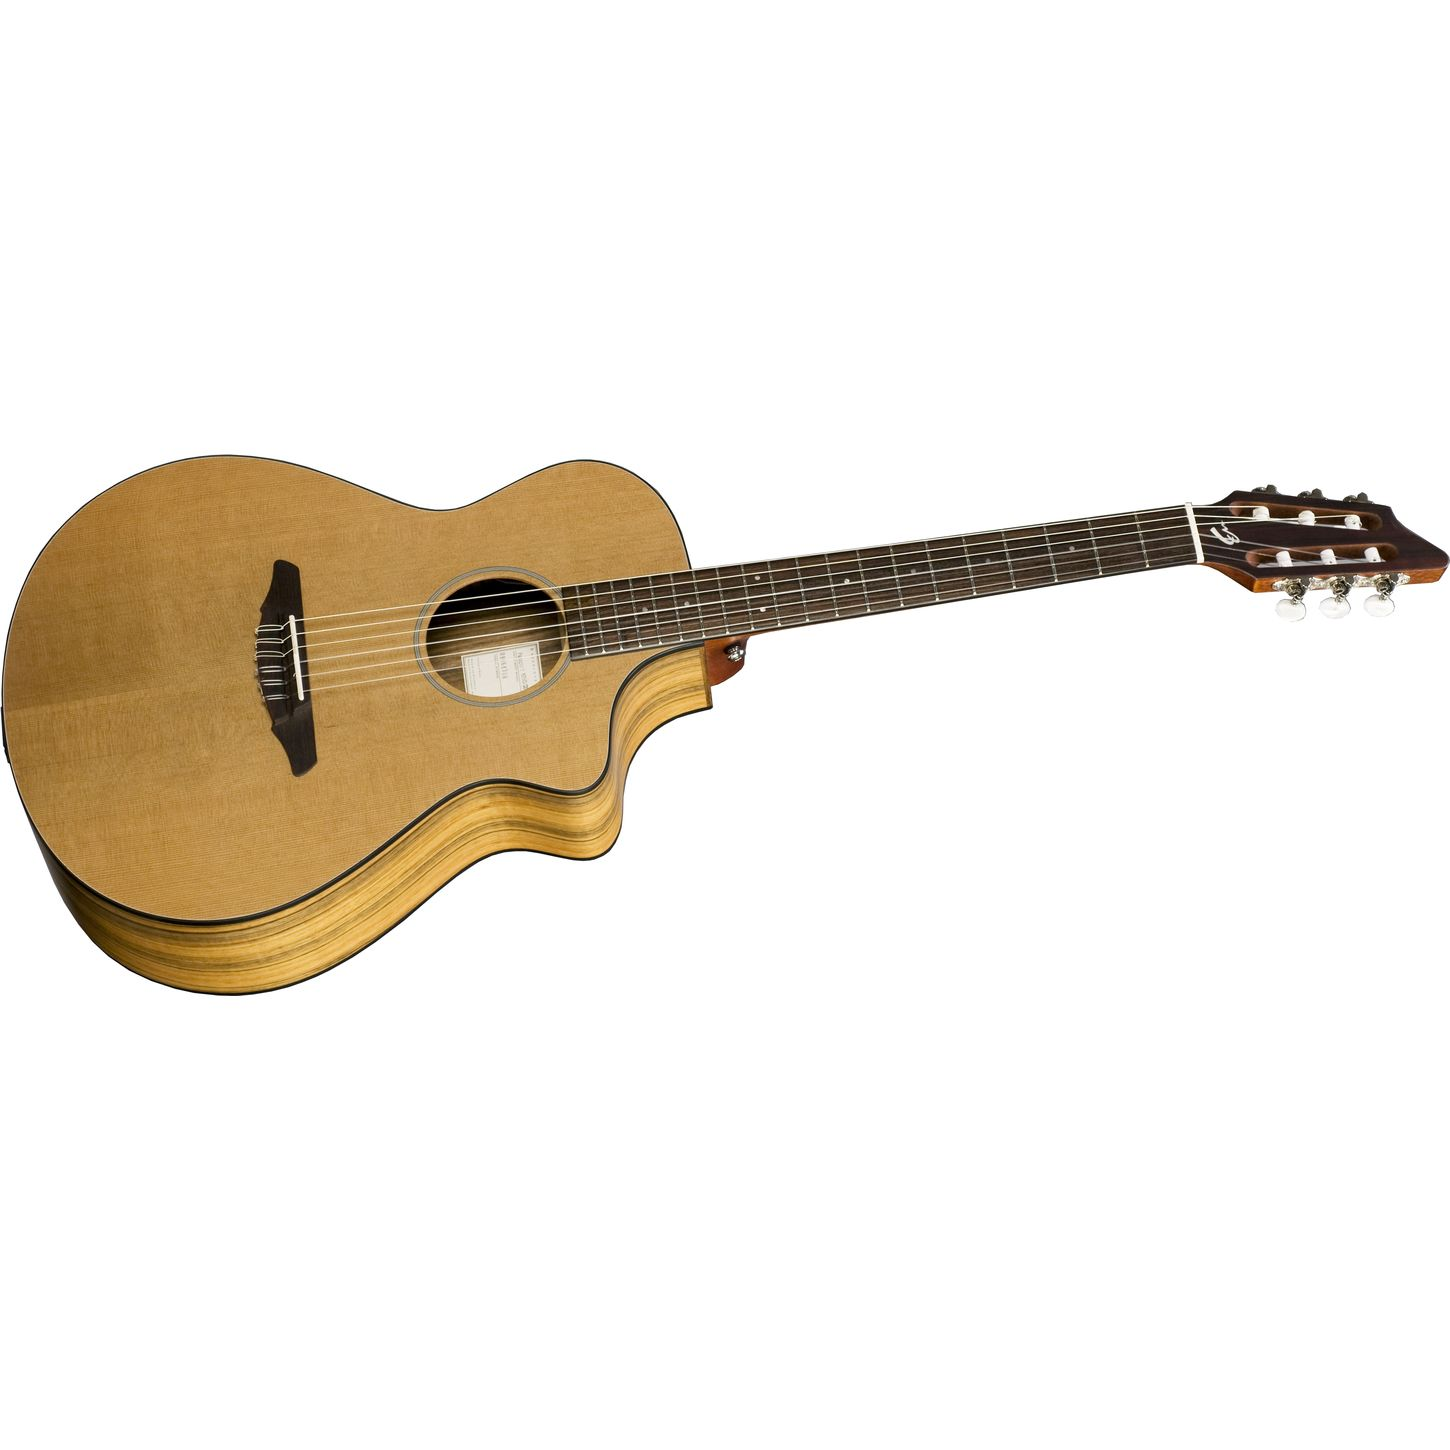 ... N250/COe Nylon String Acoustic-Electric Guitar | Musician's Friend